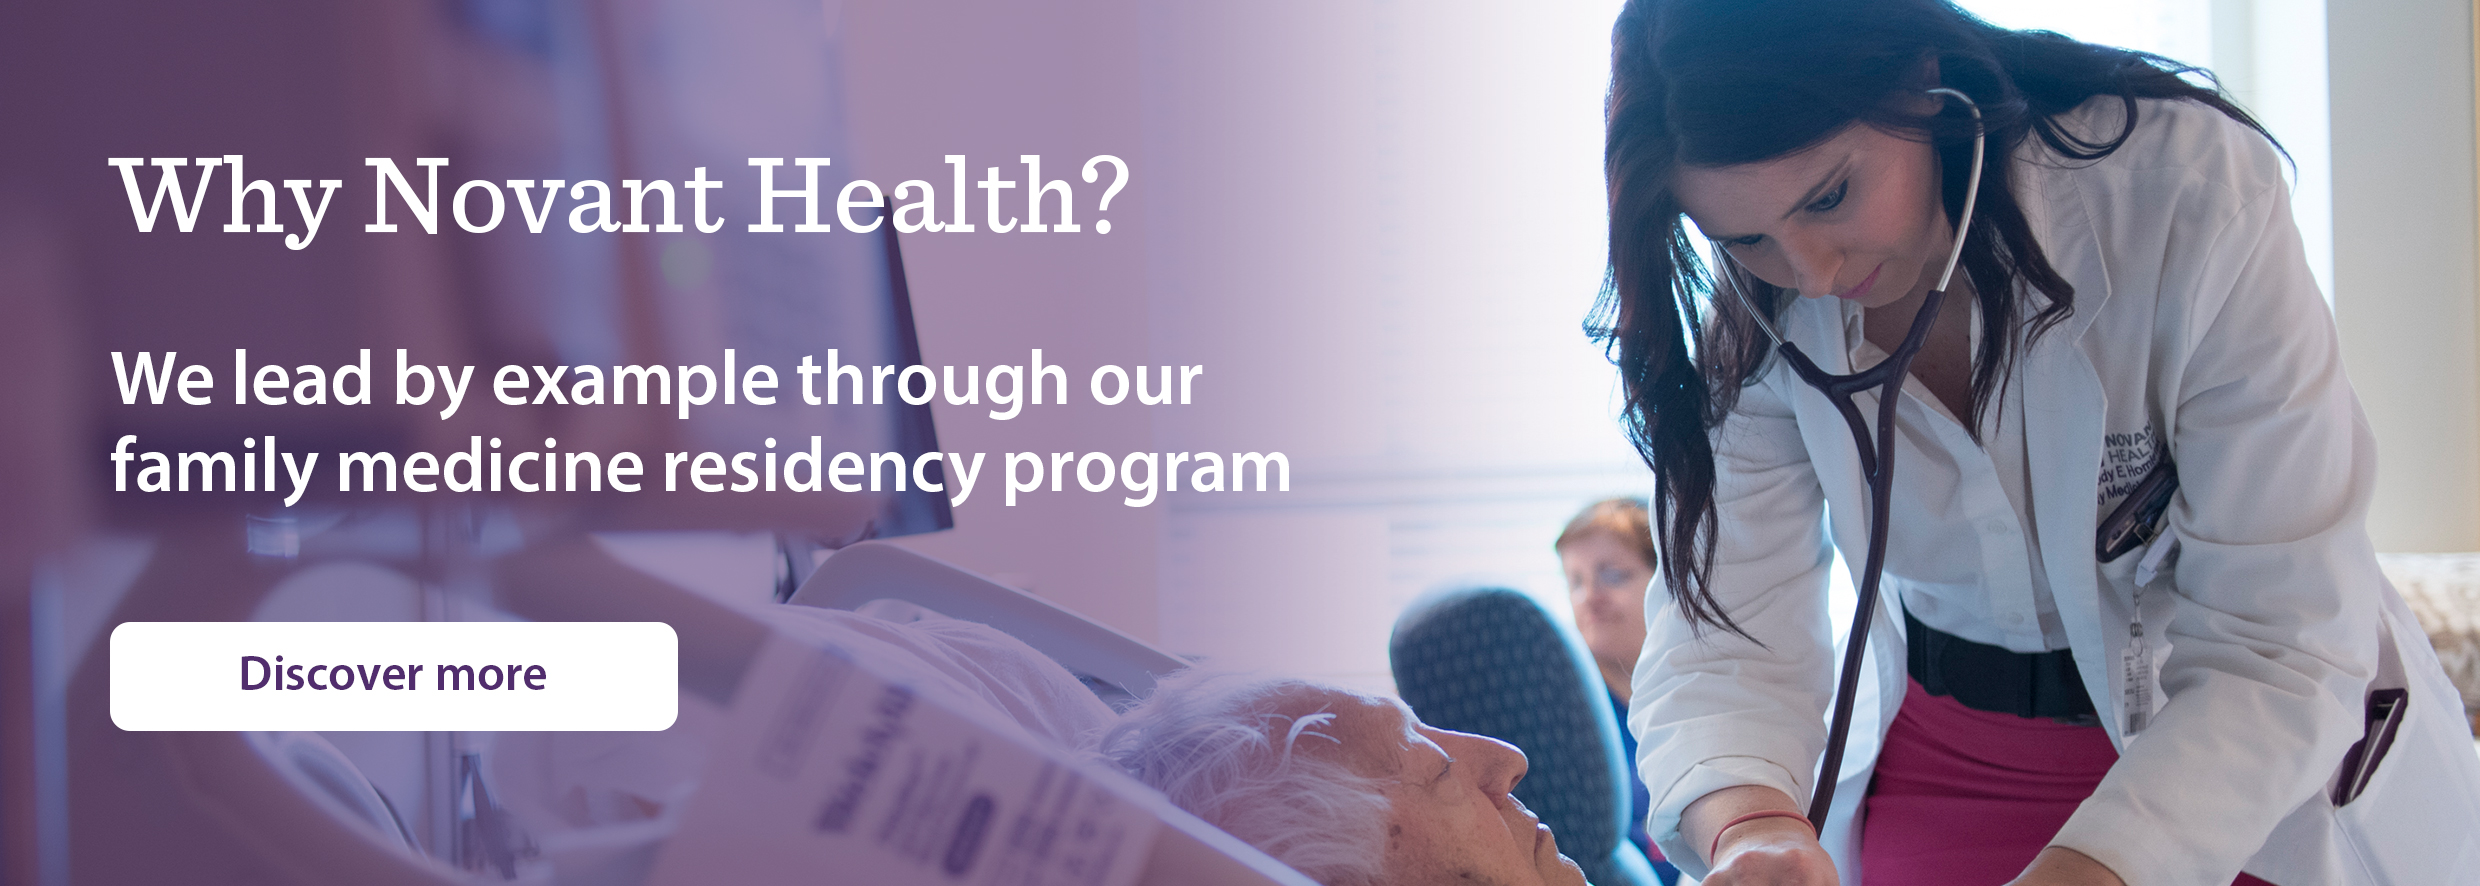 Why Novant Health? We lead by example through our family residency program